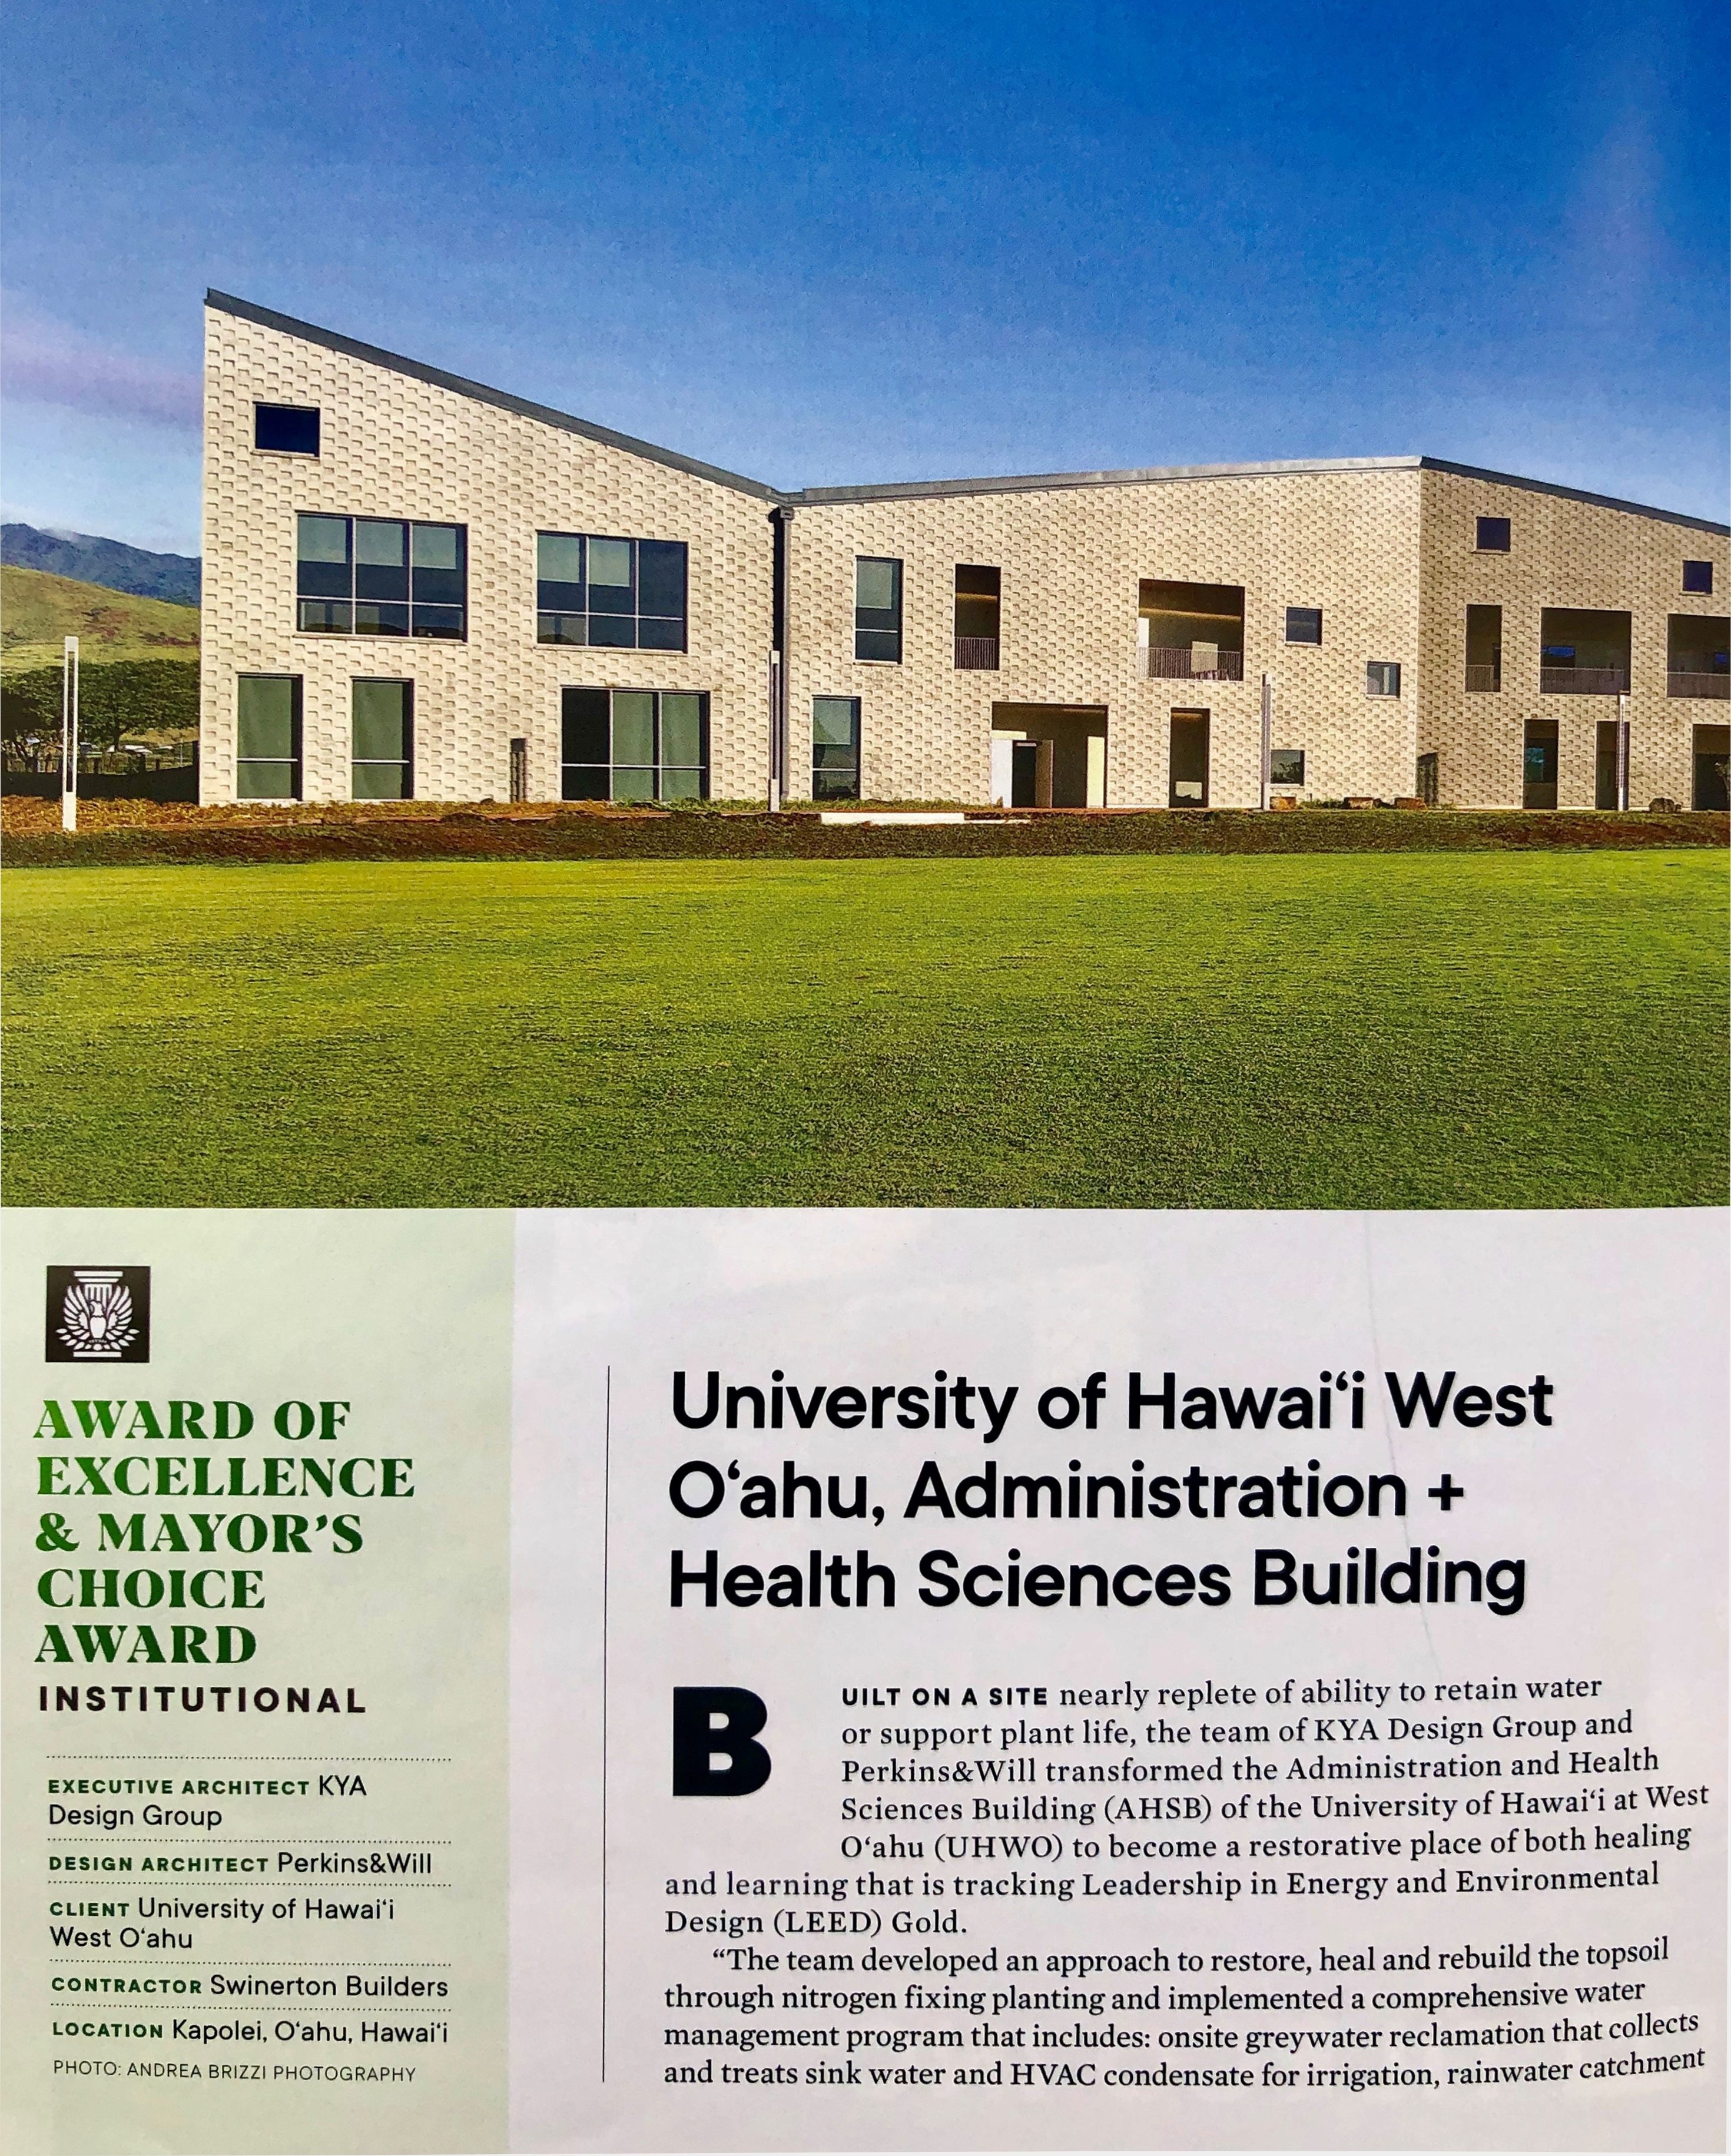 The 2019 AIA Design Awards: Award of Excellence goes to KYA's UH West Oahu, Administration + Health Sciences Building